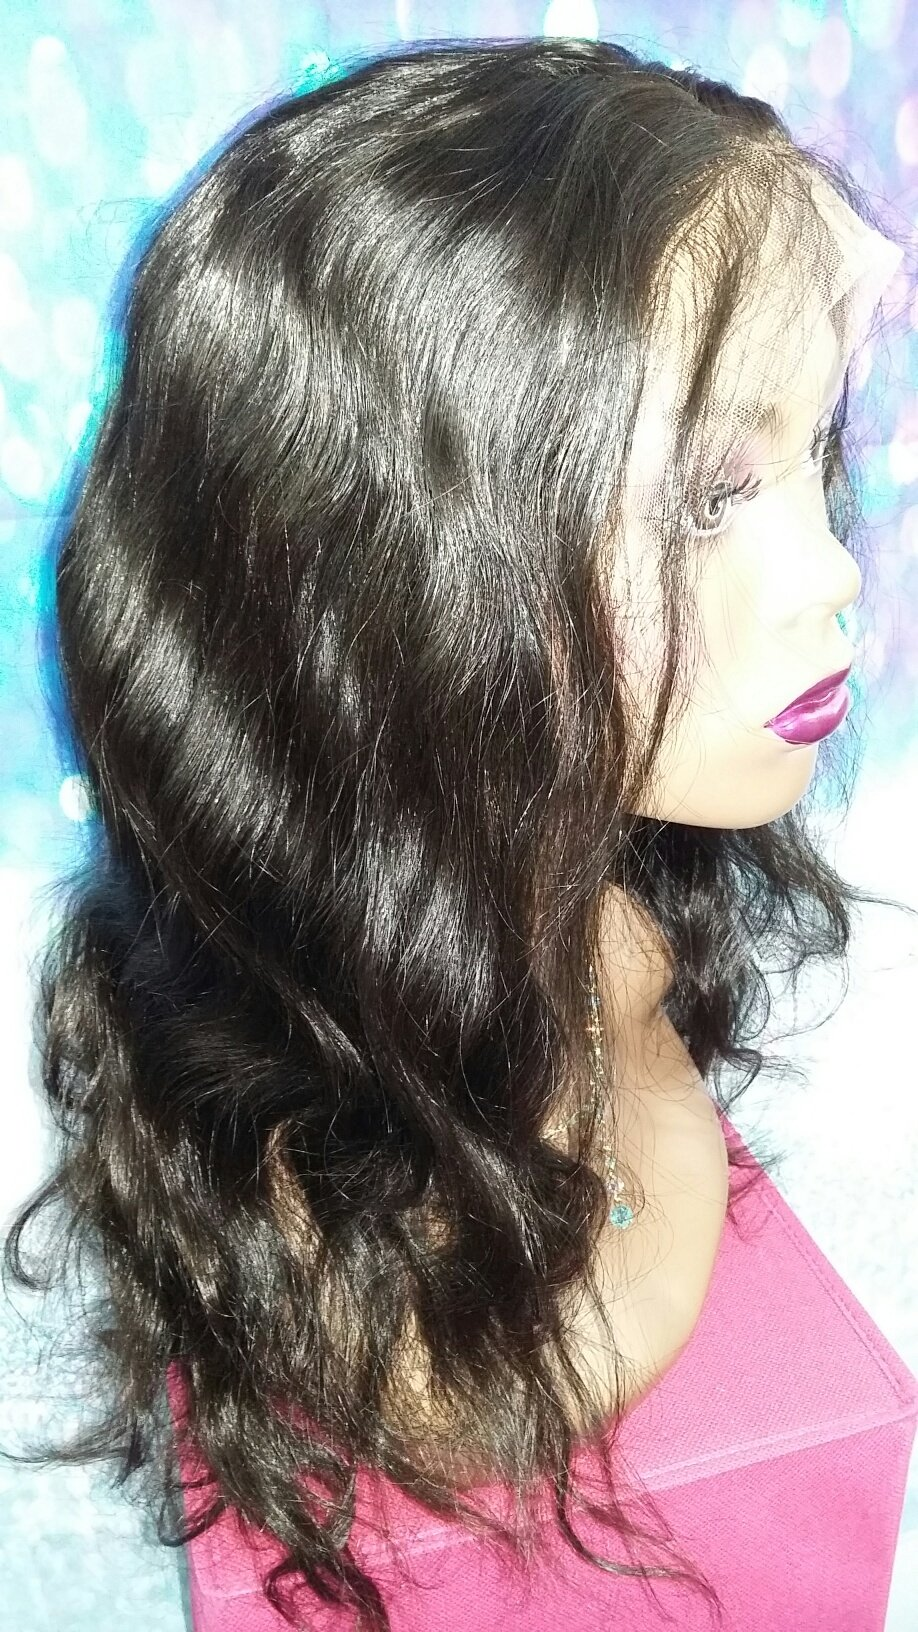 16 INCH HUMAN HAIR LACE FRONT FULL WIG INDIAN VIRGIN BODY WAVE GLUELESS